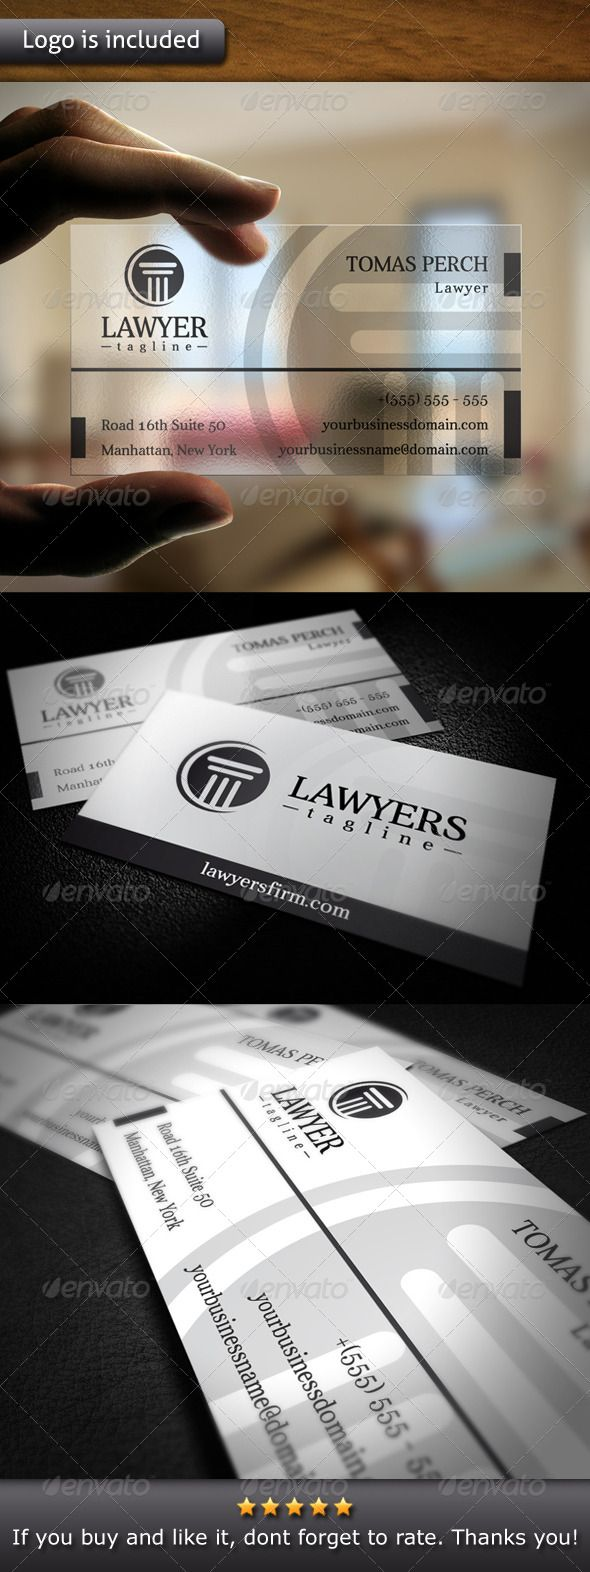 11 best Business Cards - Lawyer images on Pinterest | Business ...